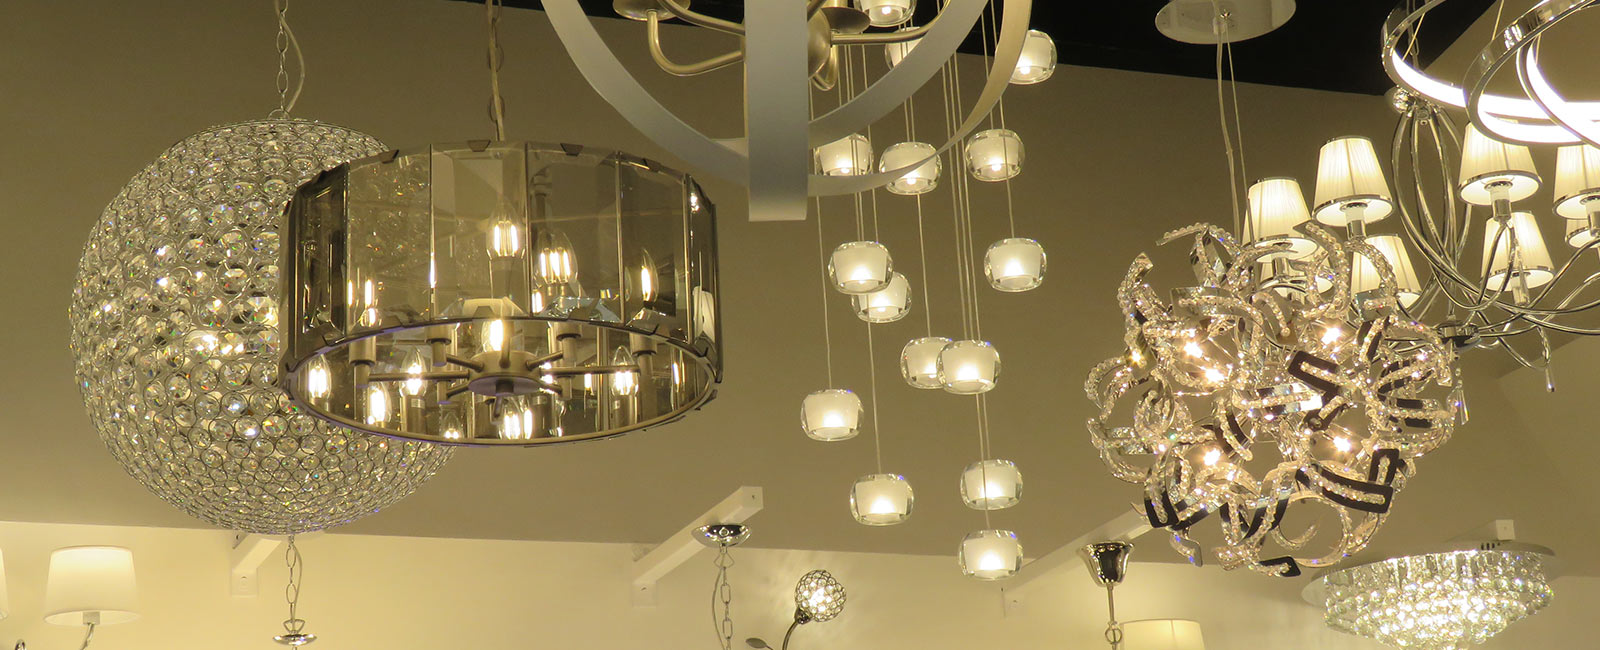 ceiling-lighting-wirralv2